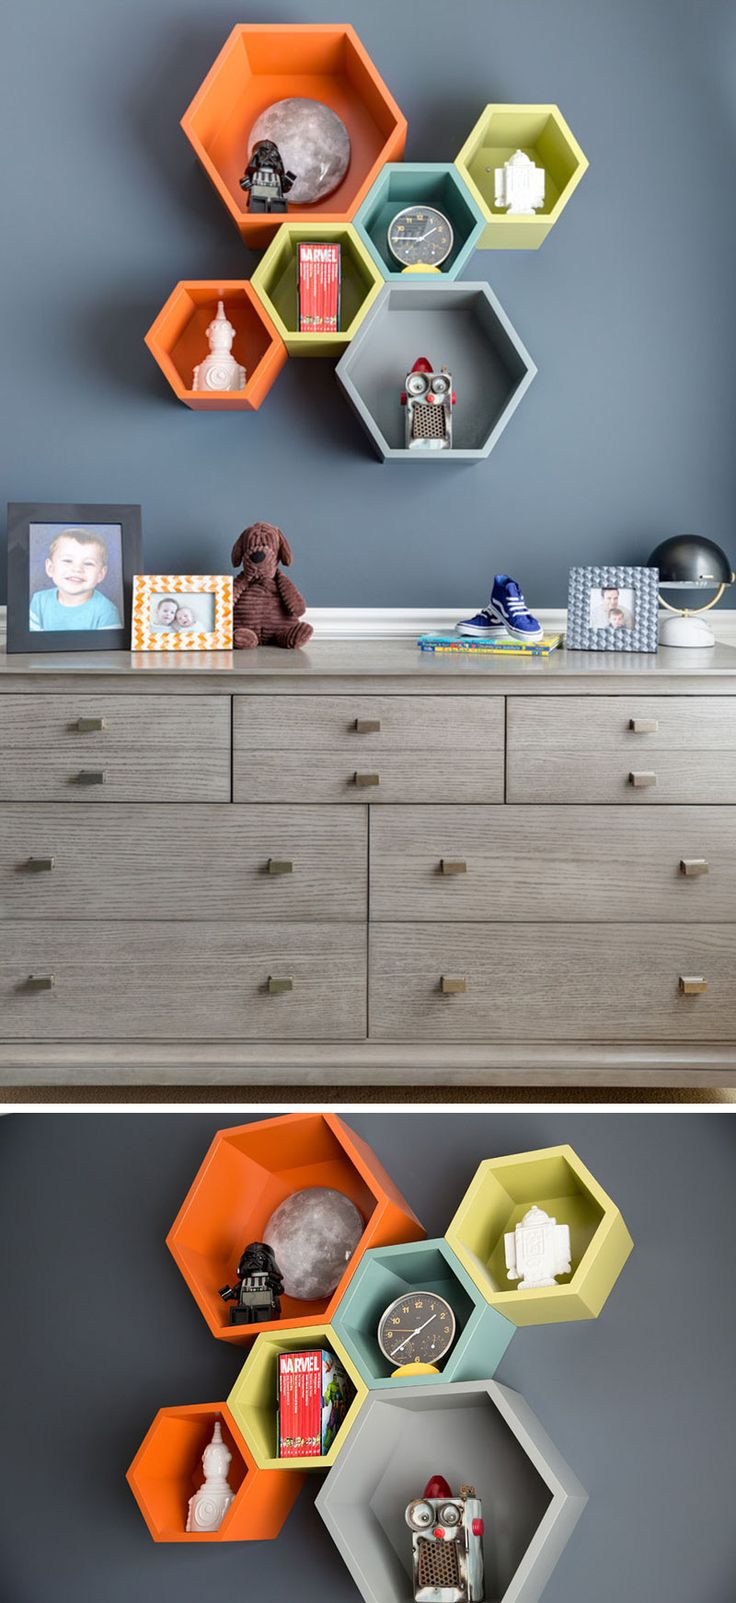 In this boys bedroom the wood dresser, multi-colored hexagonal shelves hold more precious space treasures, like Star Wars figurines, and space themed comic books.